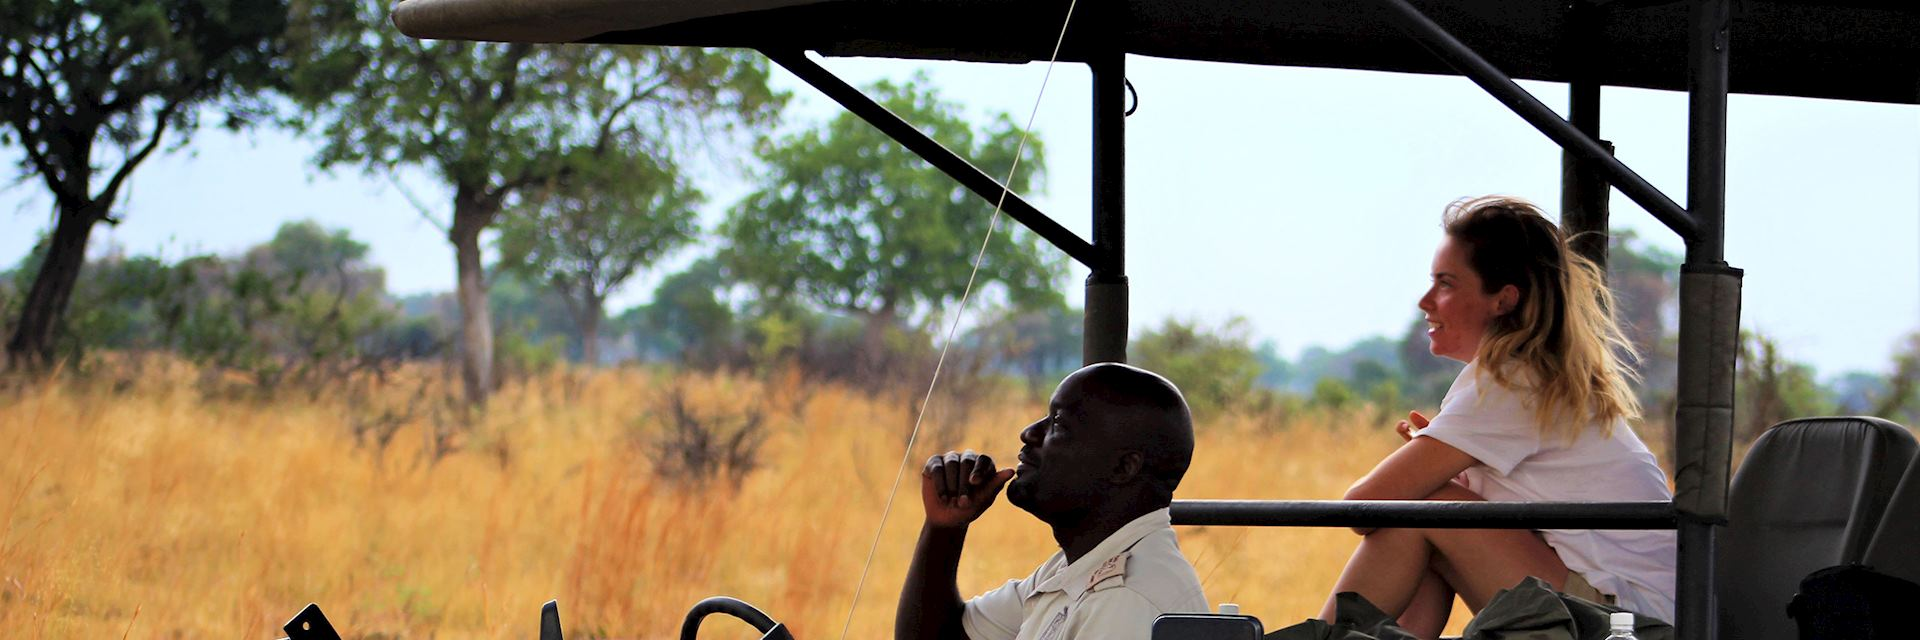 Hannah on a game drive in Botswana